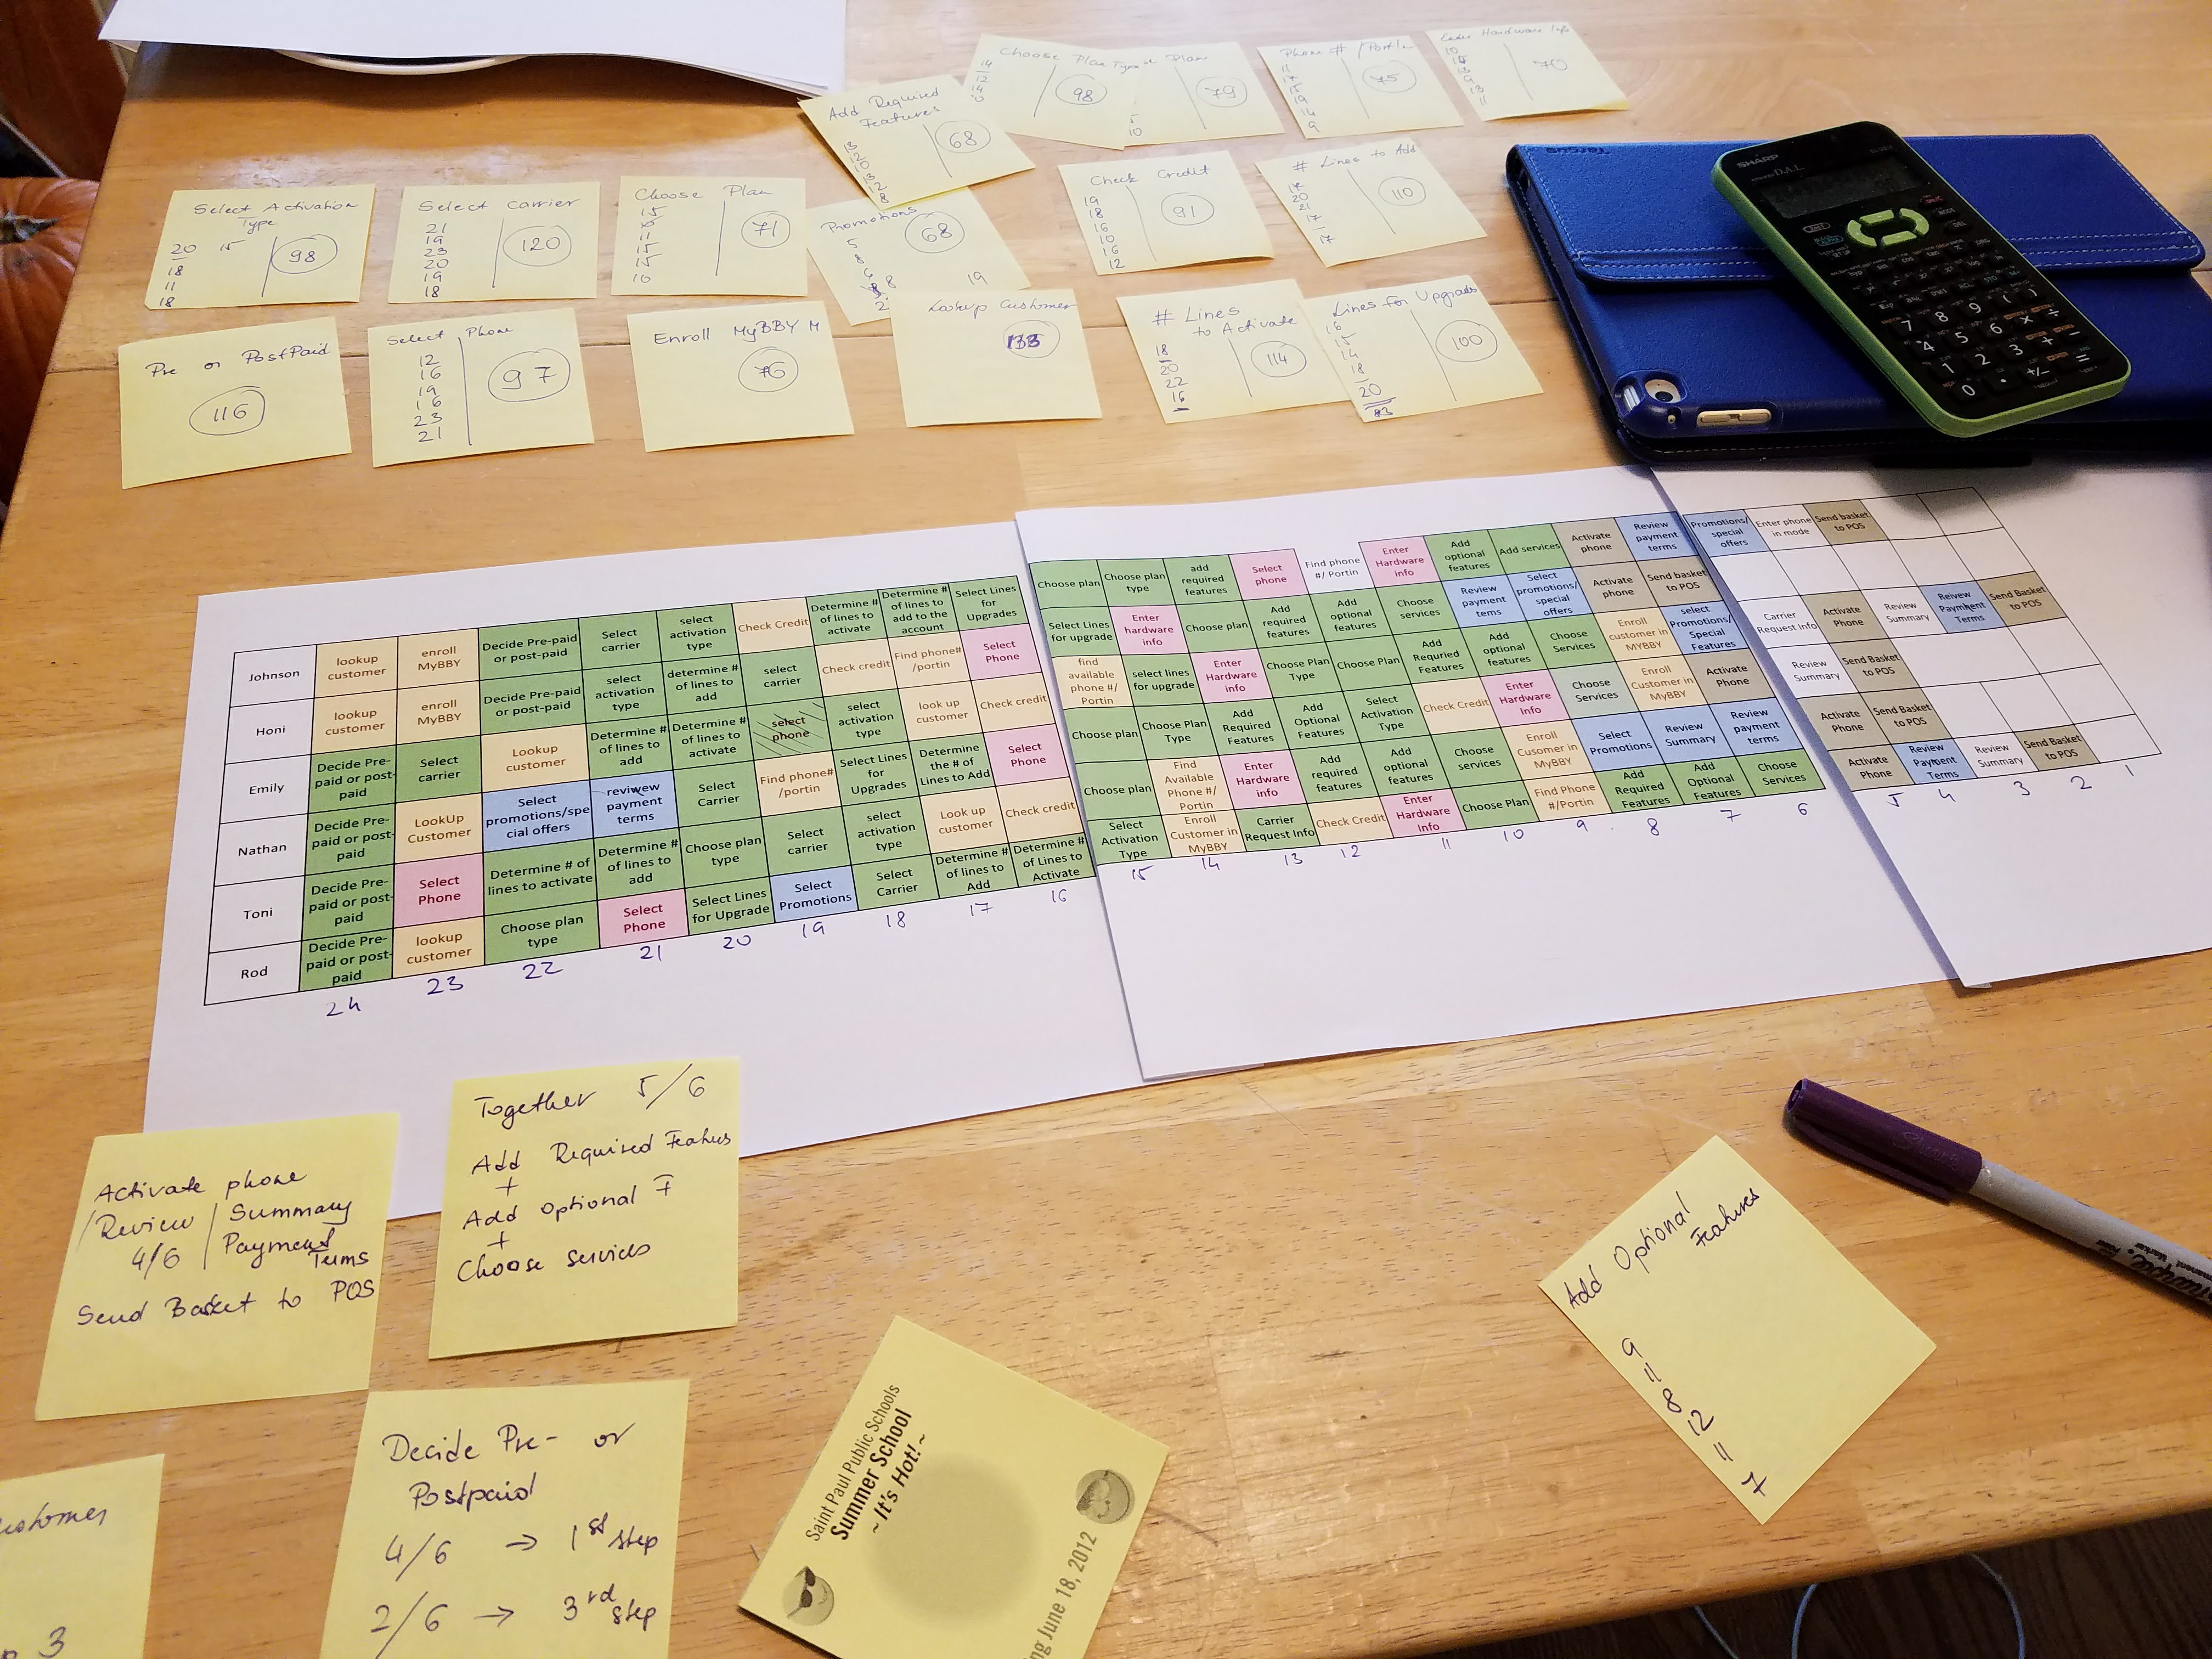 a desk covered with cards and a colored spreadsheet